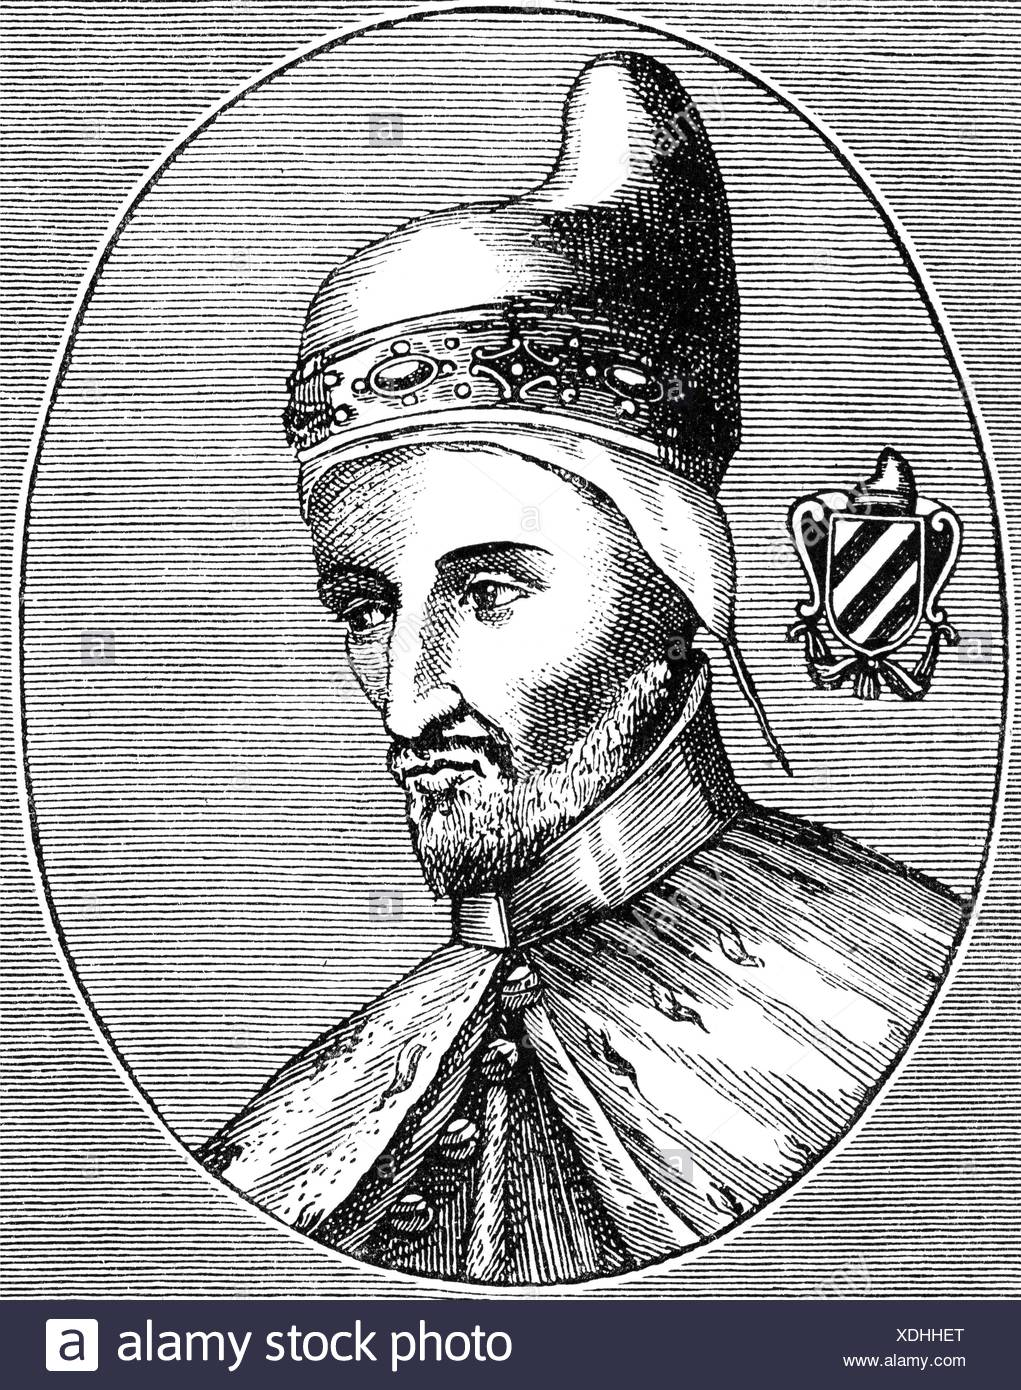 Contarini, Andrea, 1300/1302 - 5.6.1382, Doge of Venice 1368 - 1382, portrait, wood engraving, 19th century, Additional-Rights-Clearances-NA - Stock Image